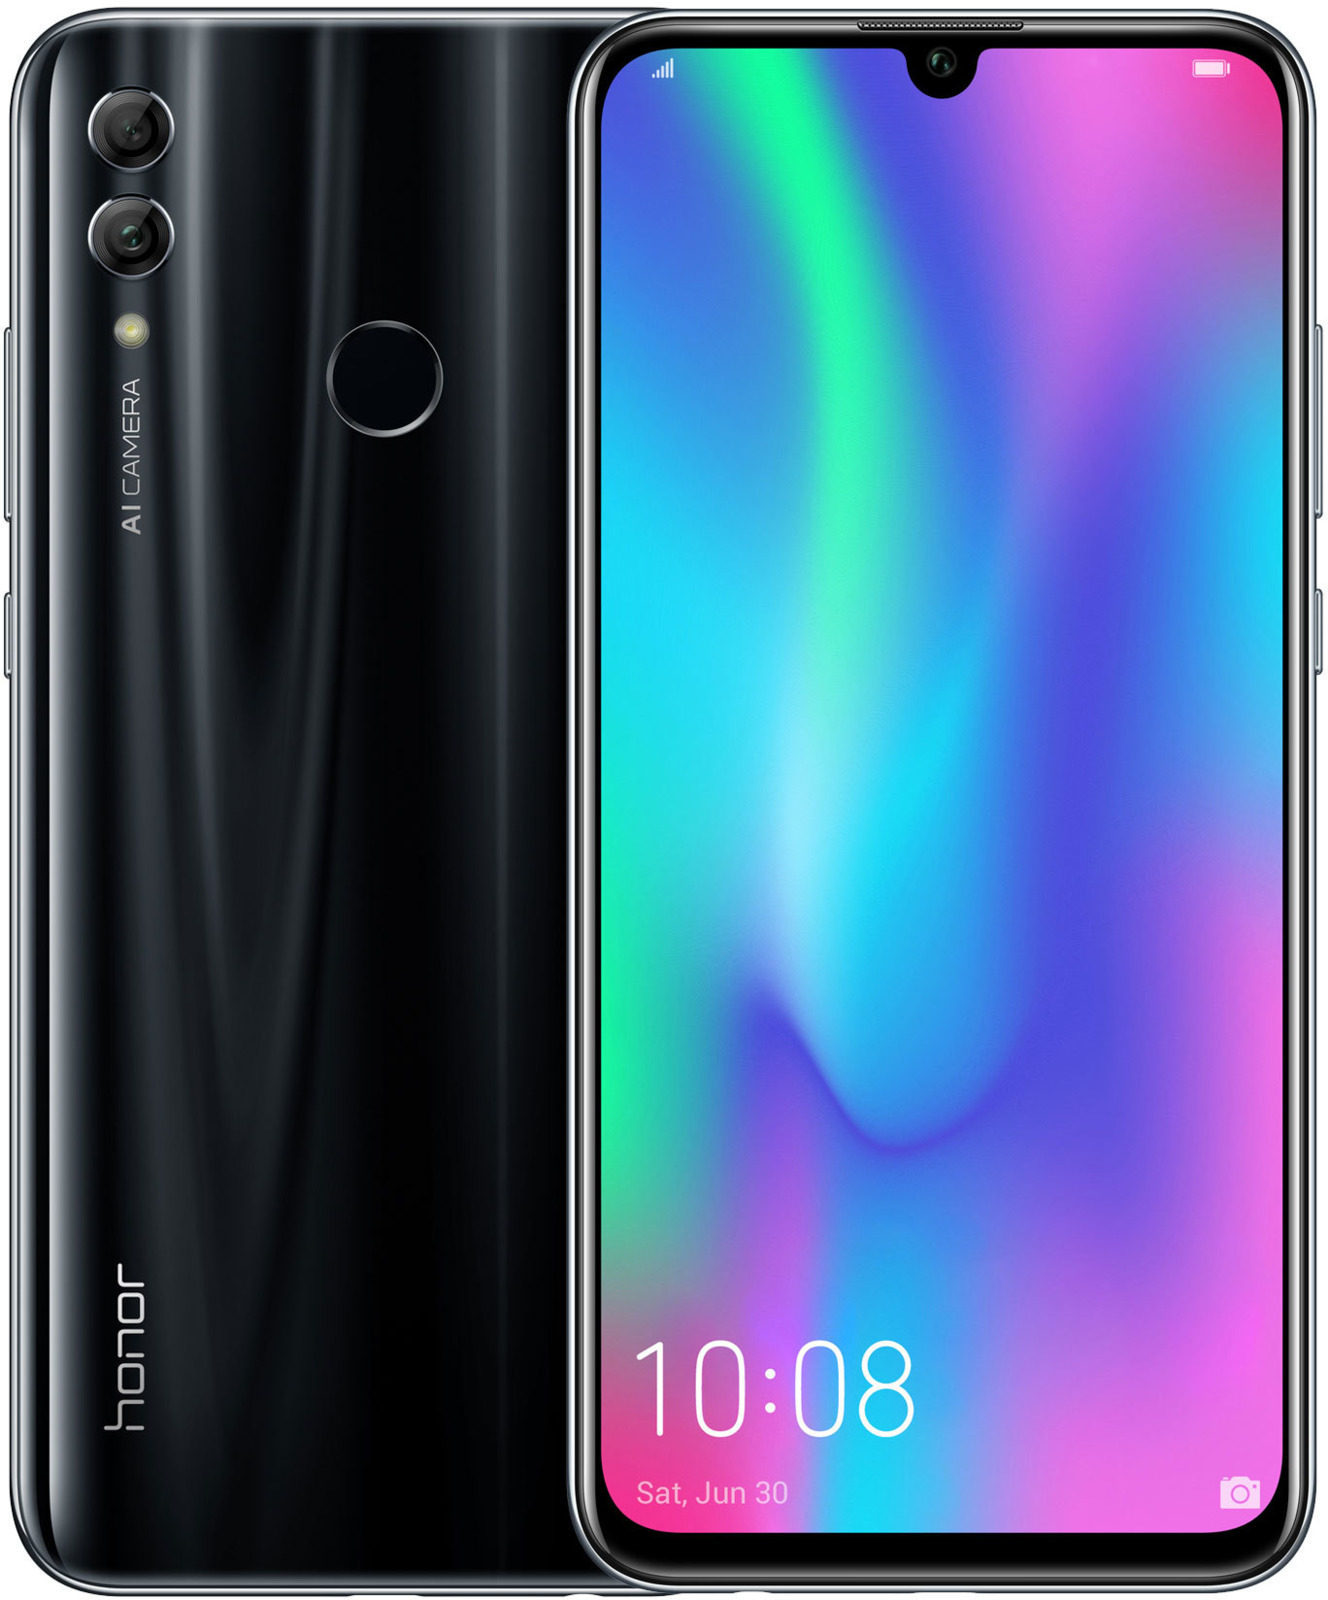 Смартфон Honor 10 Lite 3/32GB black huawei смартфон honor 9 lite 32gb серый grey